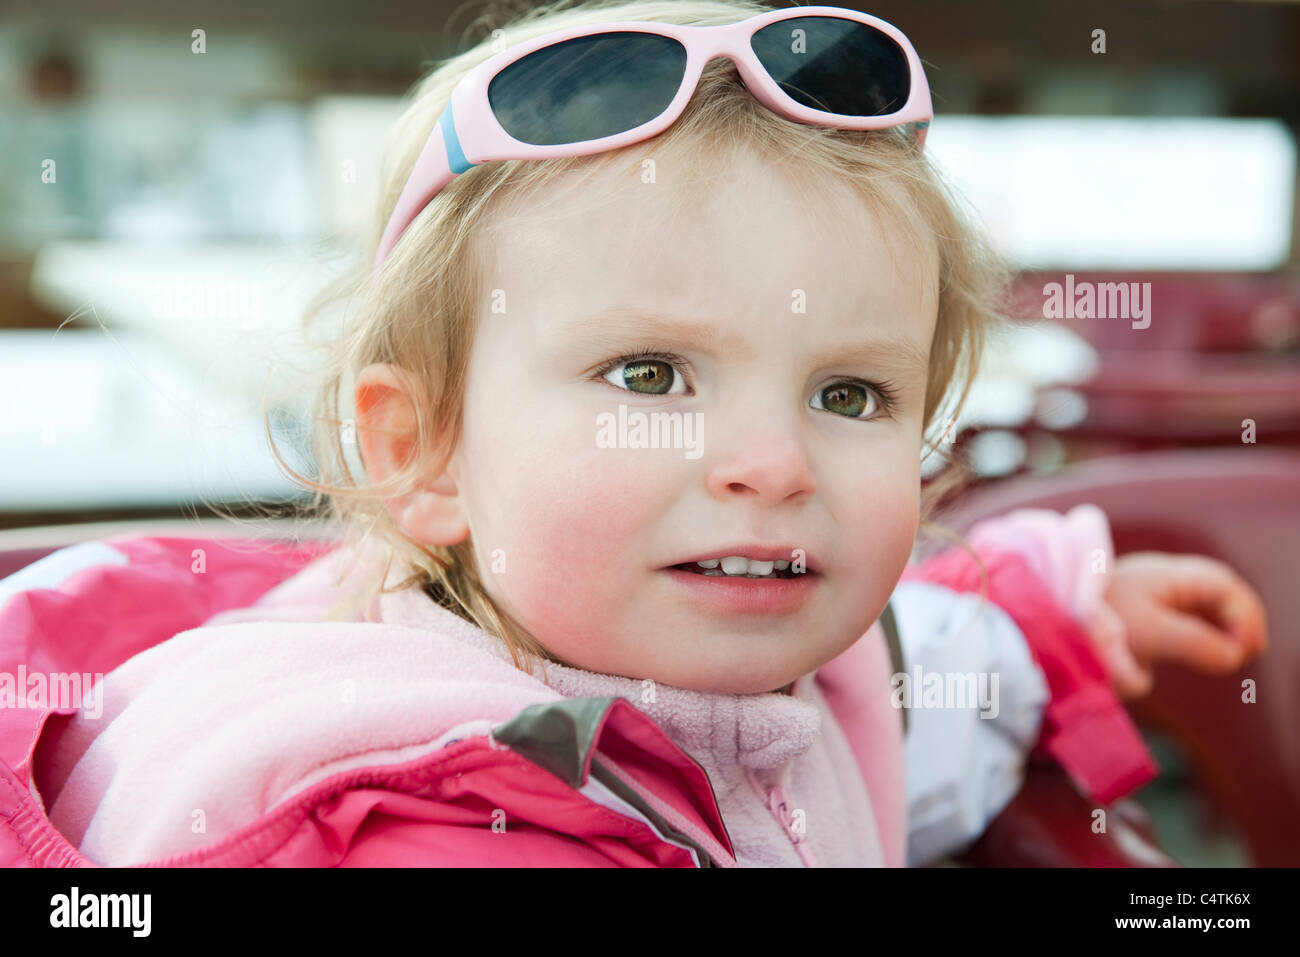 Toddler girl with sunglasses on her head, portrait - Stock Image